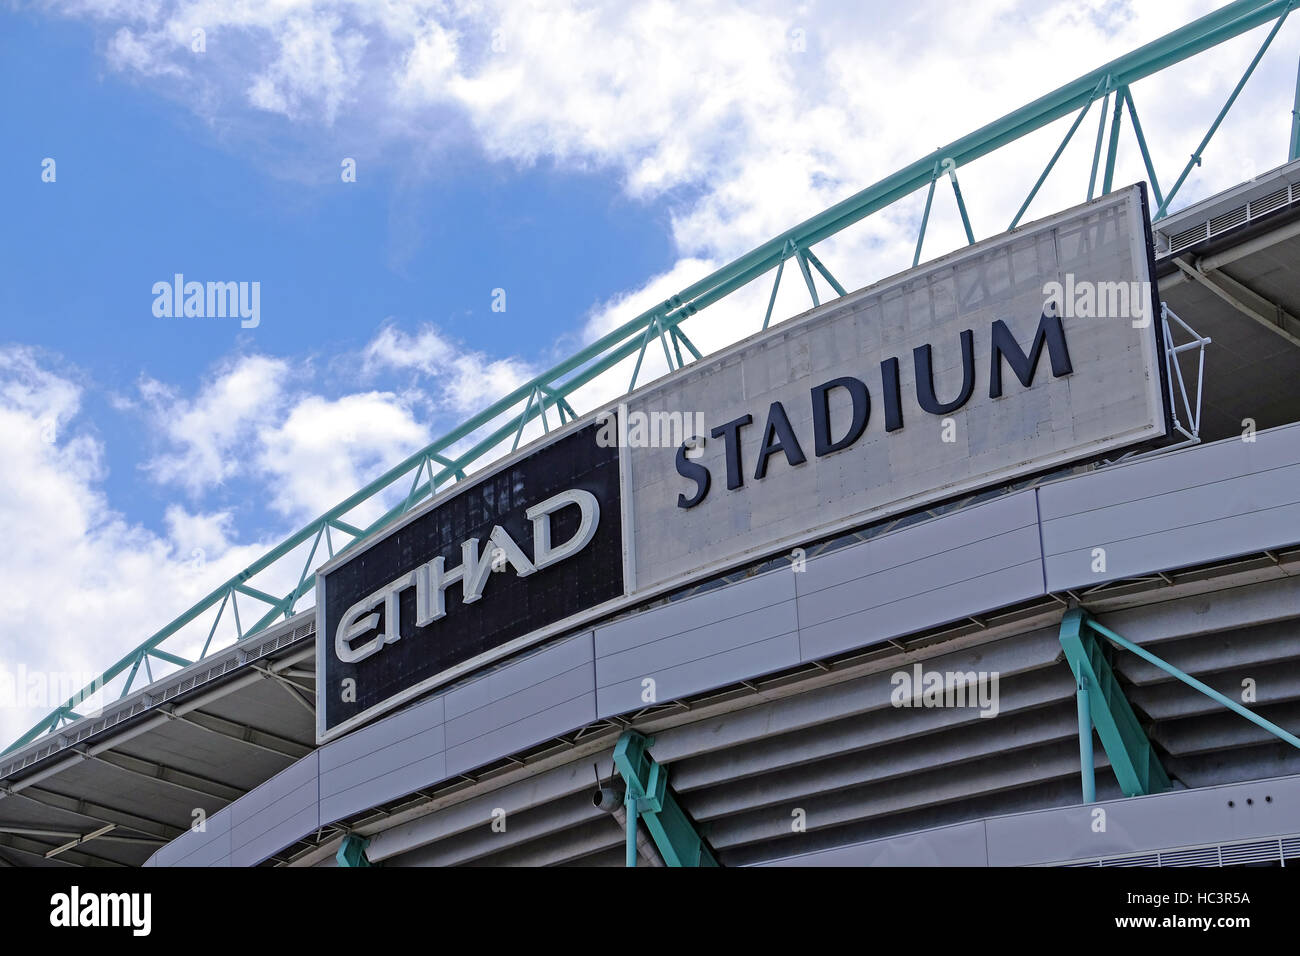 The Etihad Stadium in Melbourne, Australia - Stock Image